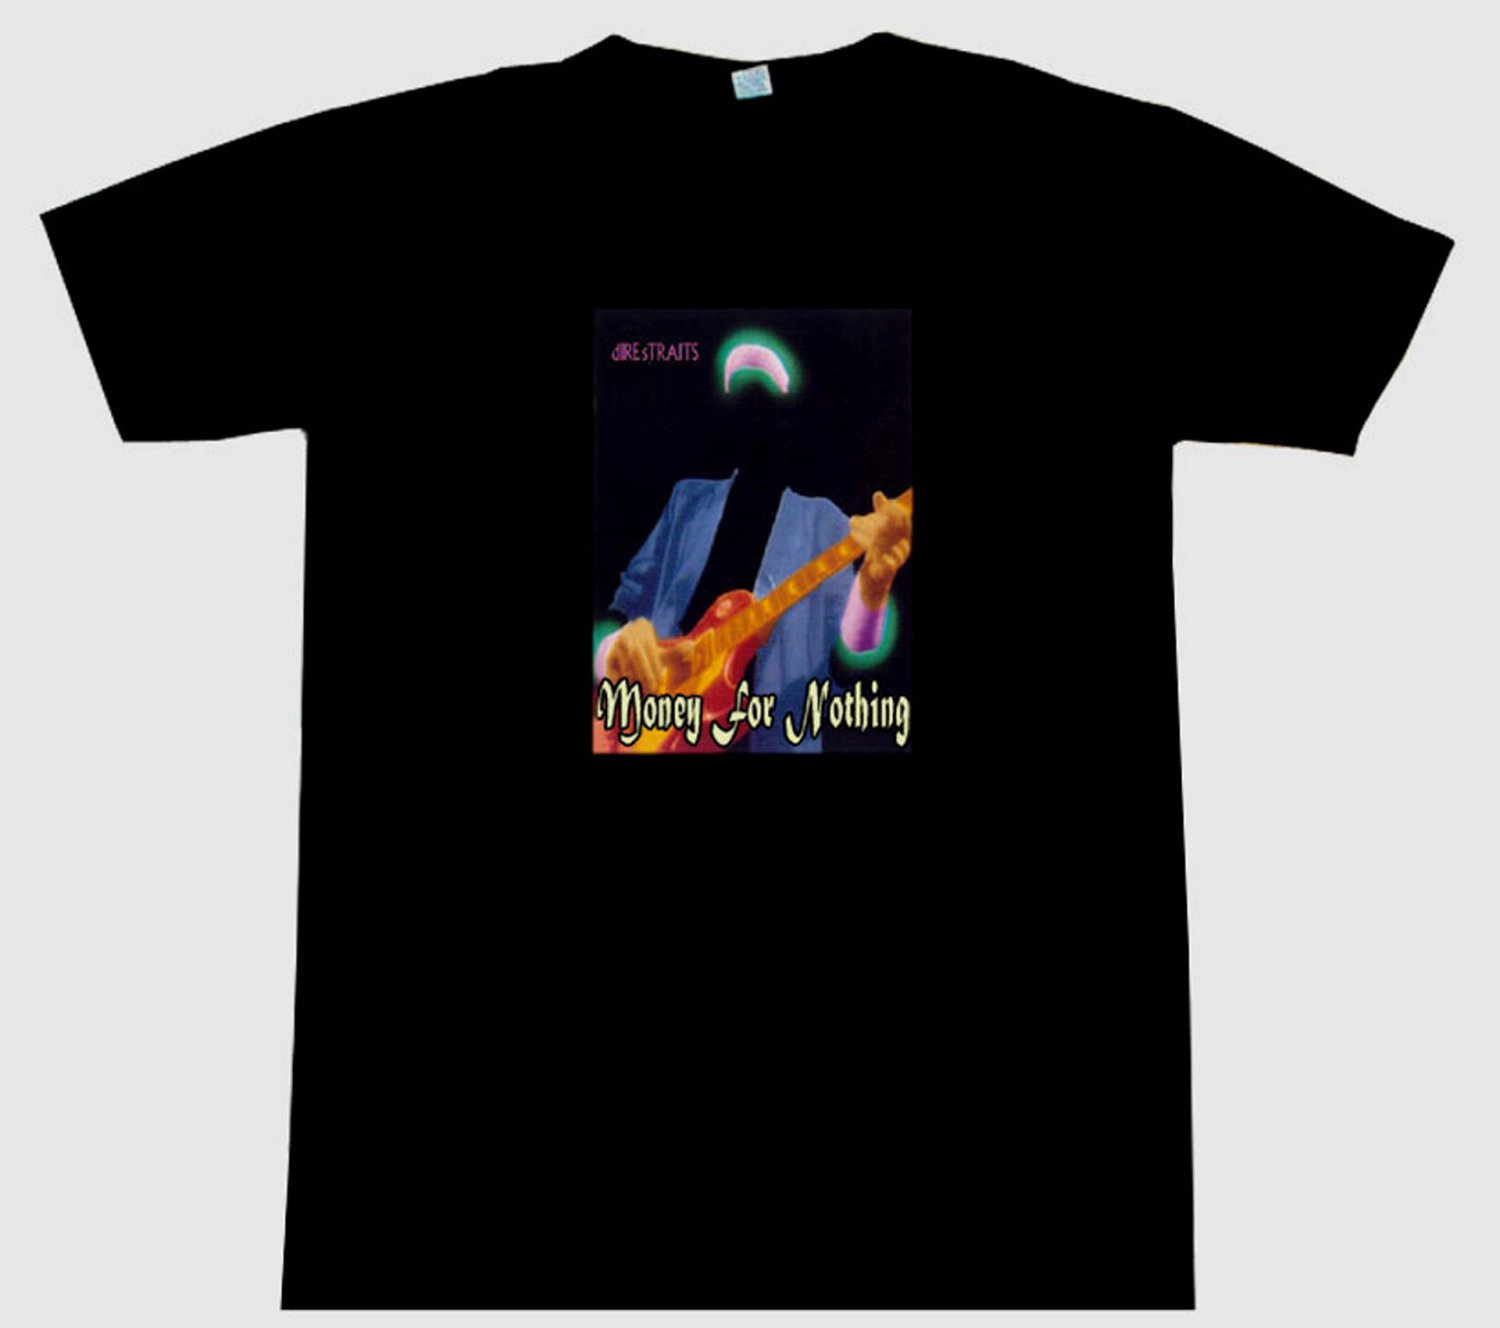 Dire straits money for nothing tee t shirt knopfler for Simply for sports brand t shirts